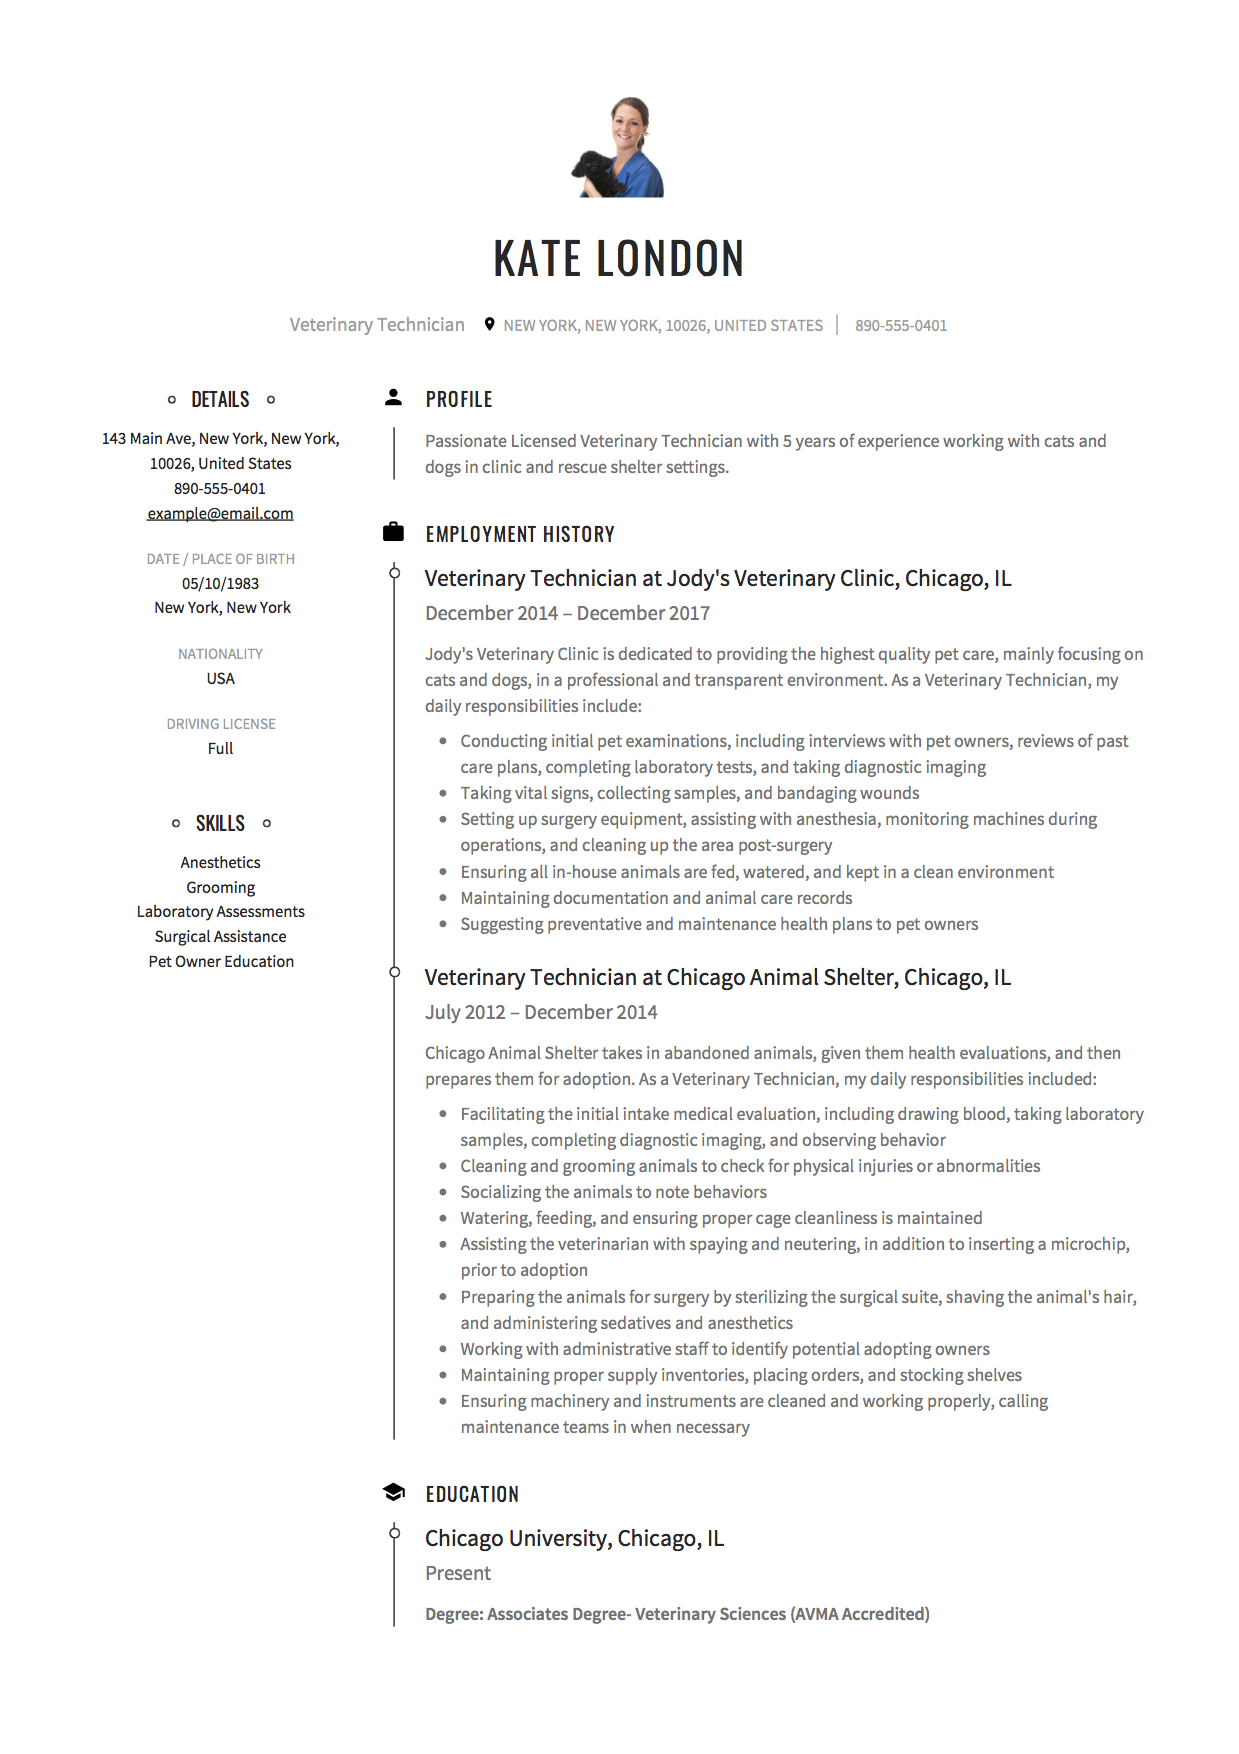 12 Veterinary Technician Resume Samples 2018 Free Downloads